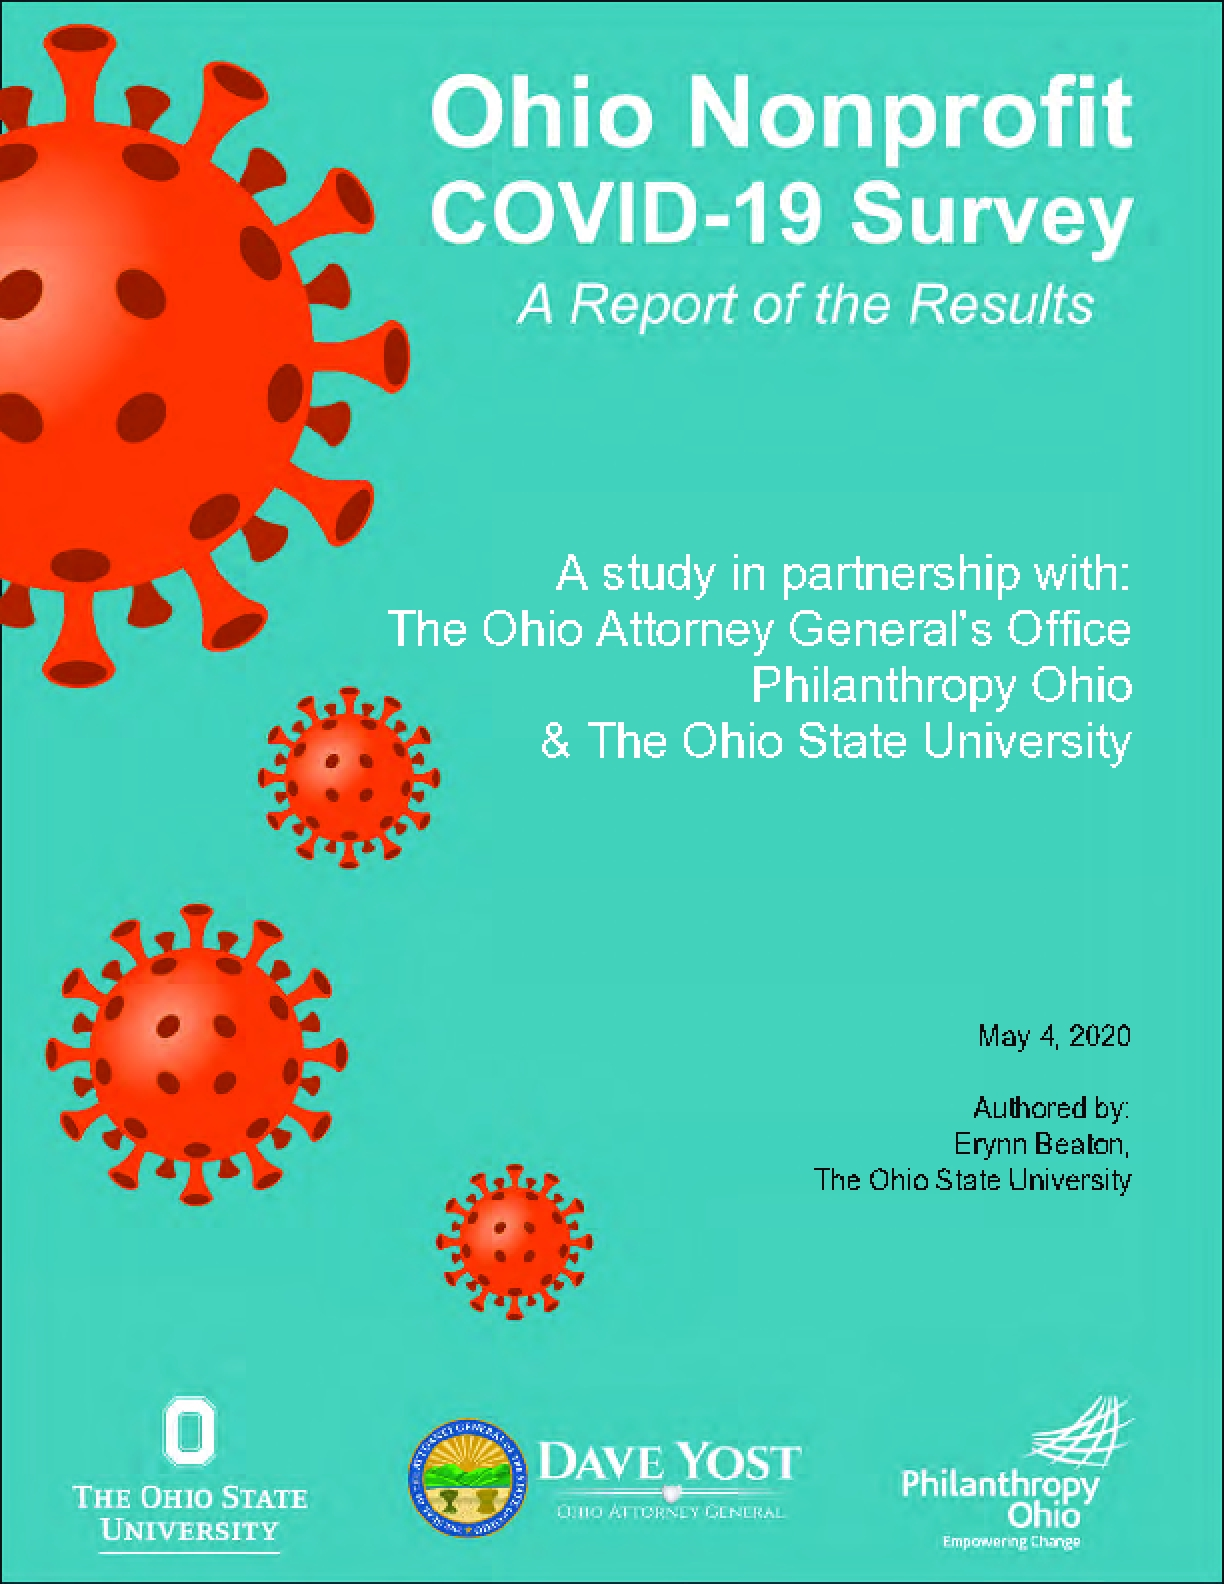 Ohio Nonprofit COVID-19 Survey: A Report of the Results